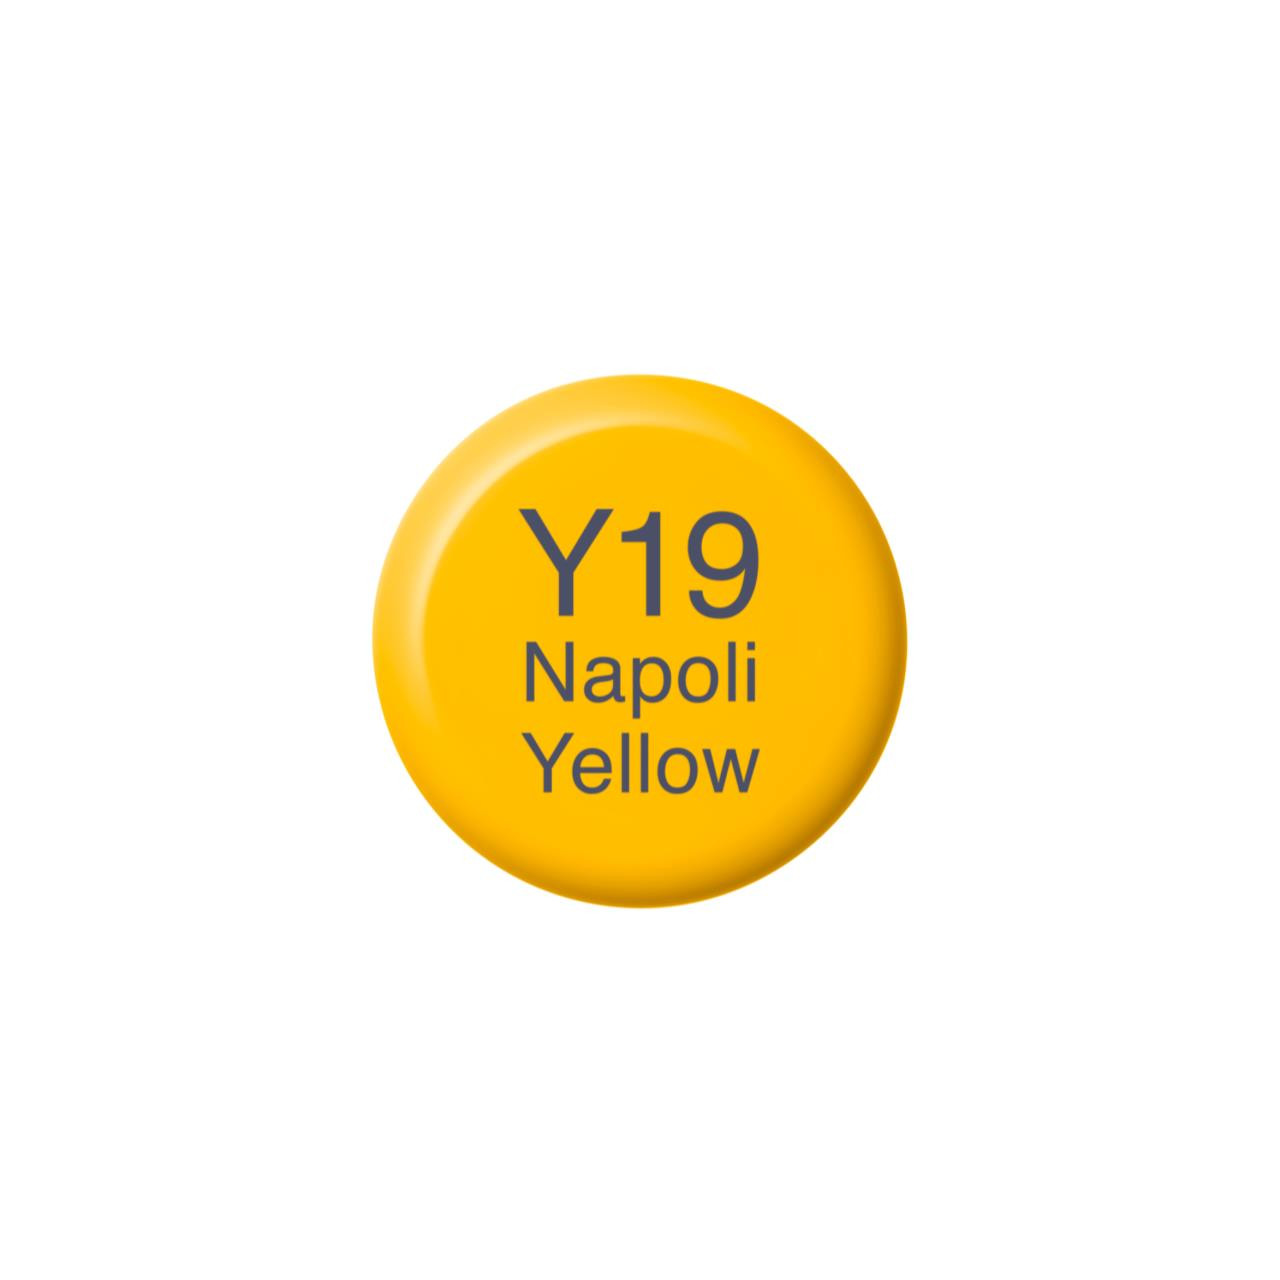 Y19 Napoli Yellow, Copic Ink - 4511338058251